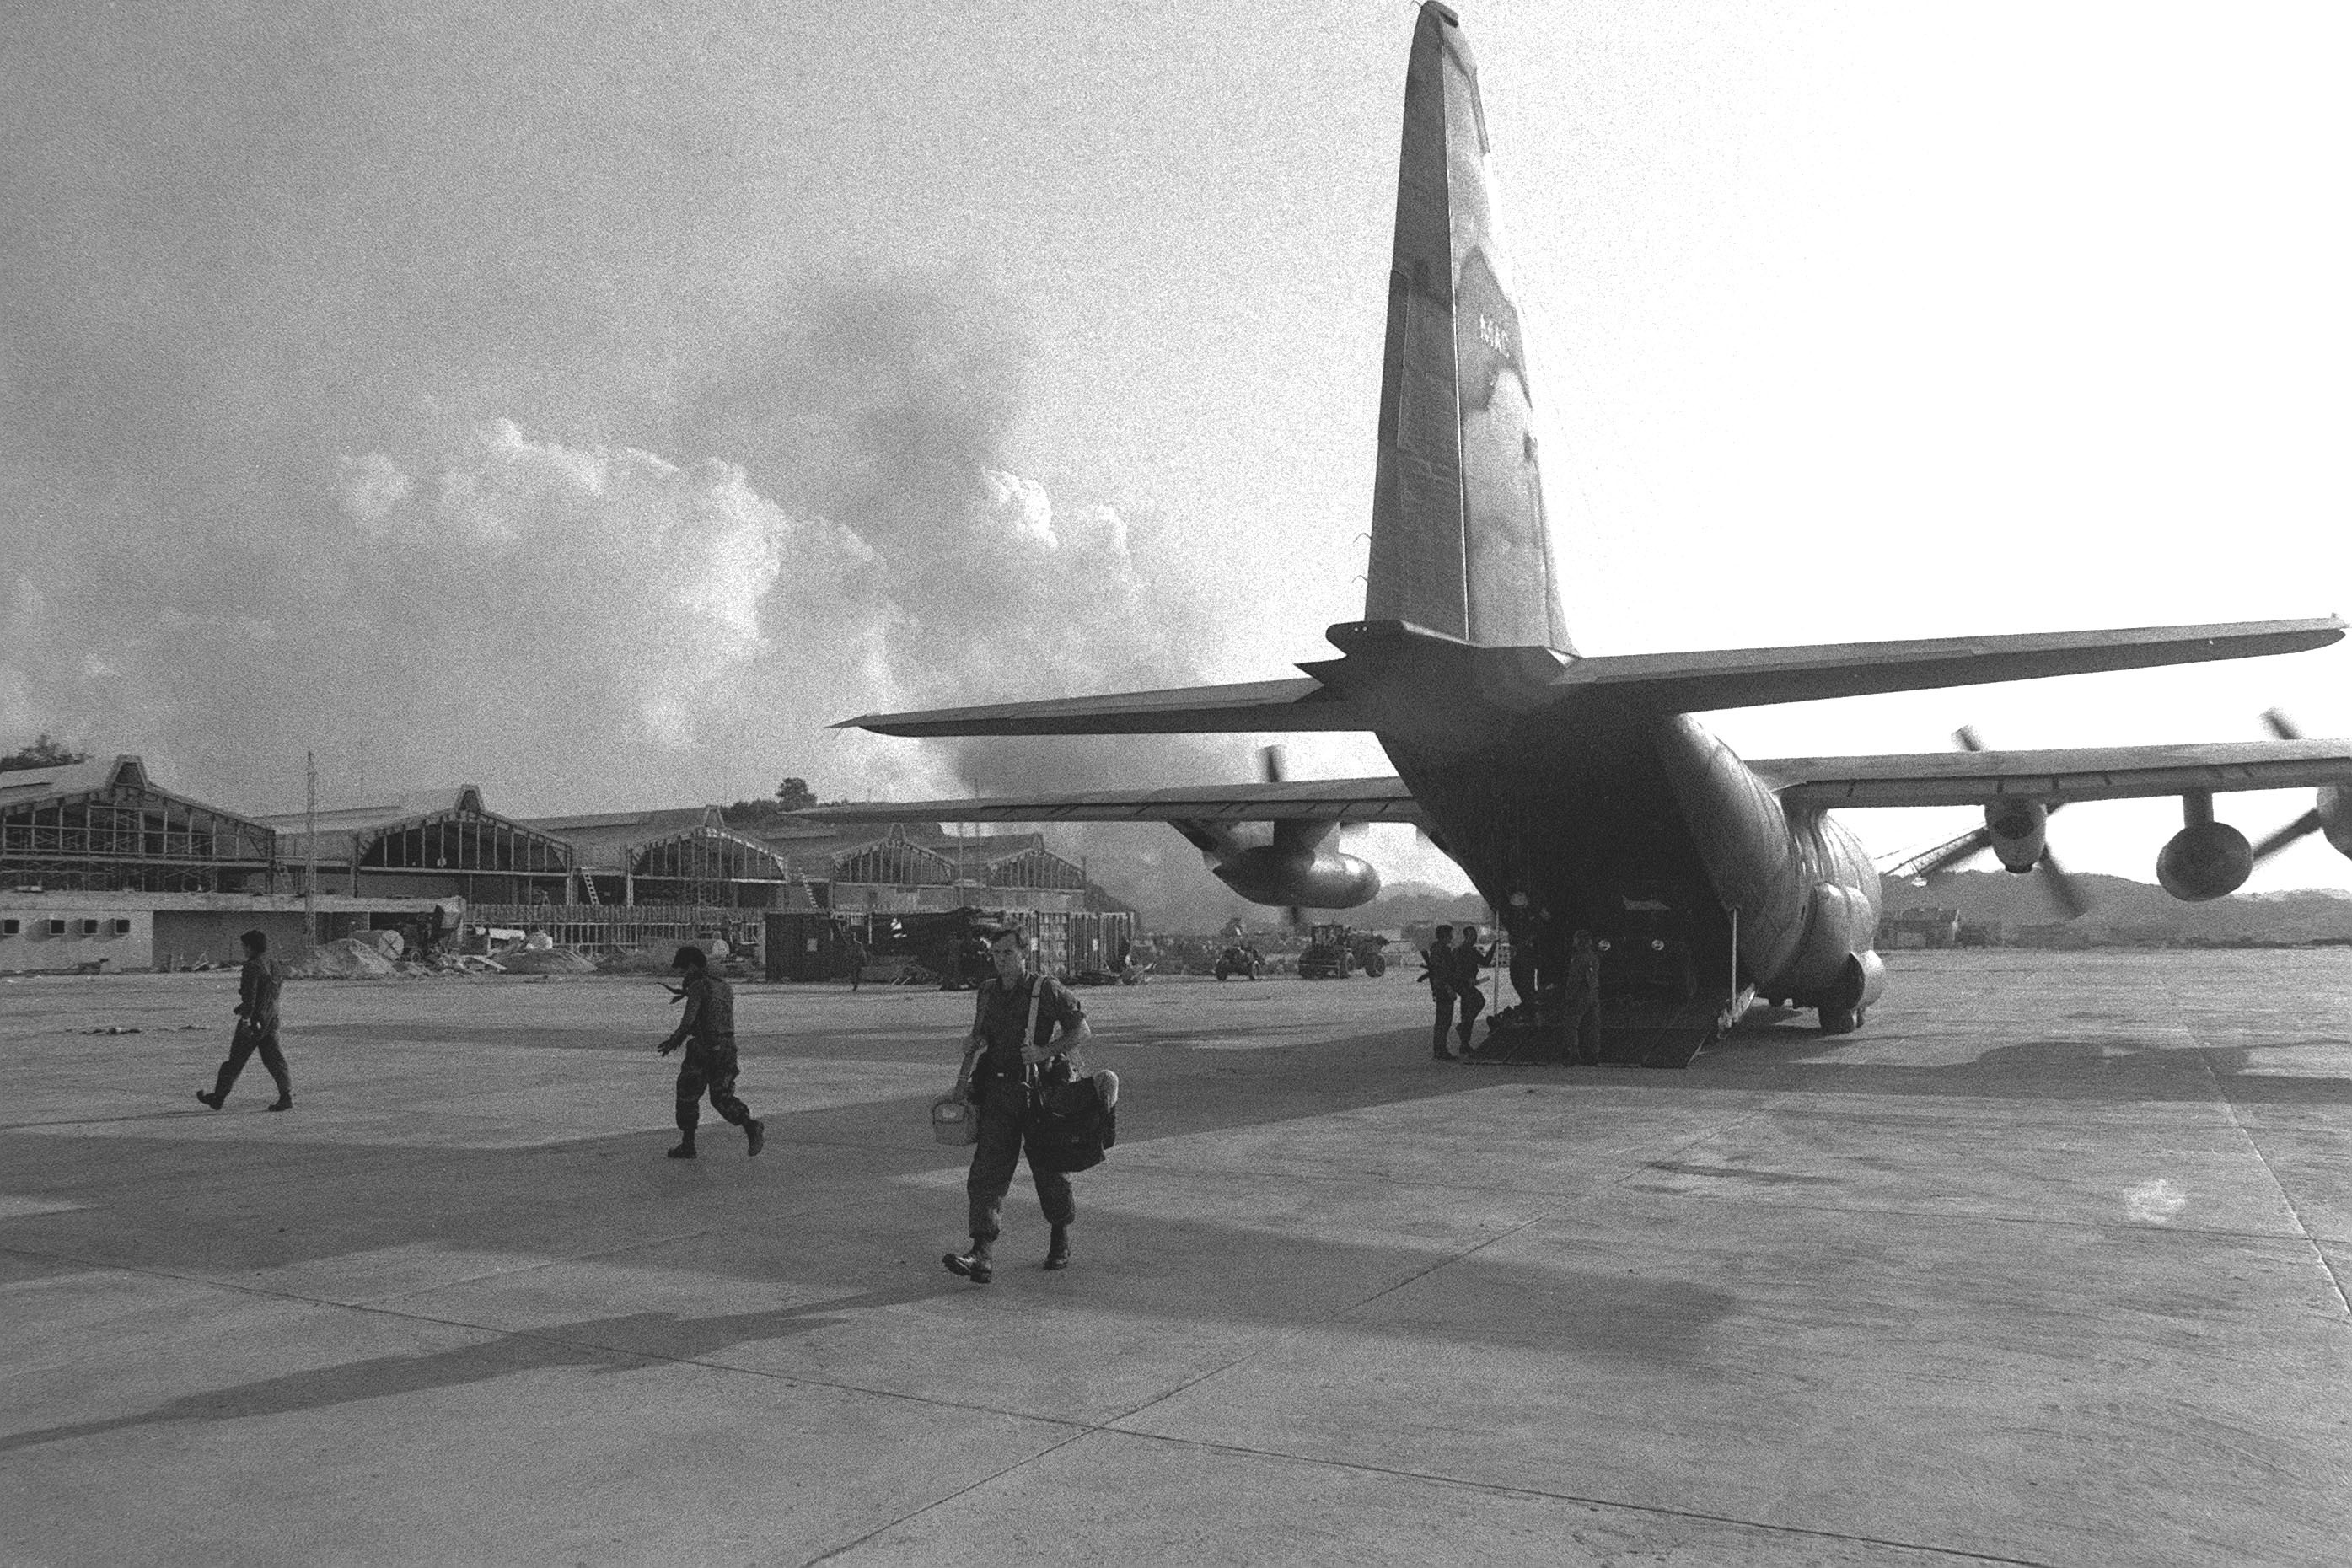 Equipment is offloaded from a C-130 Hercules aircraft at Point Salines Airfield during the multiservice, multinational Operation URGENT FURY